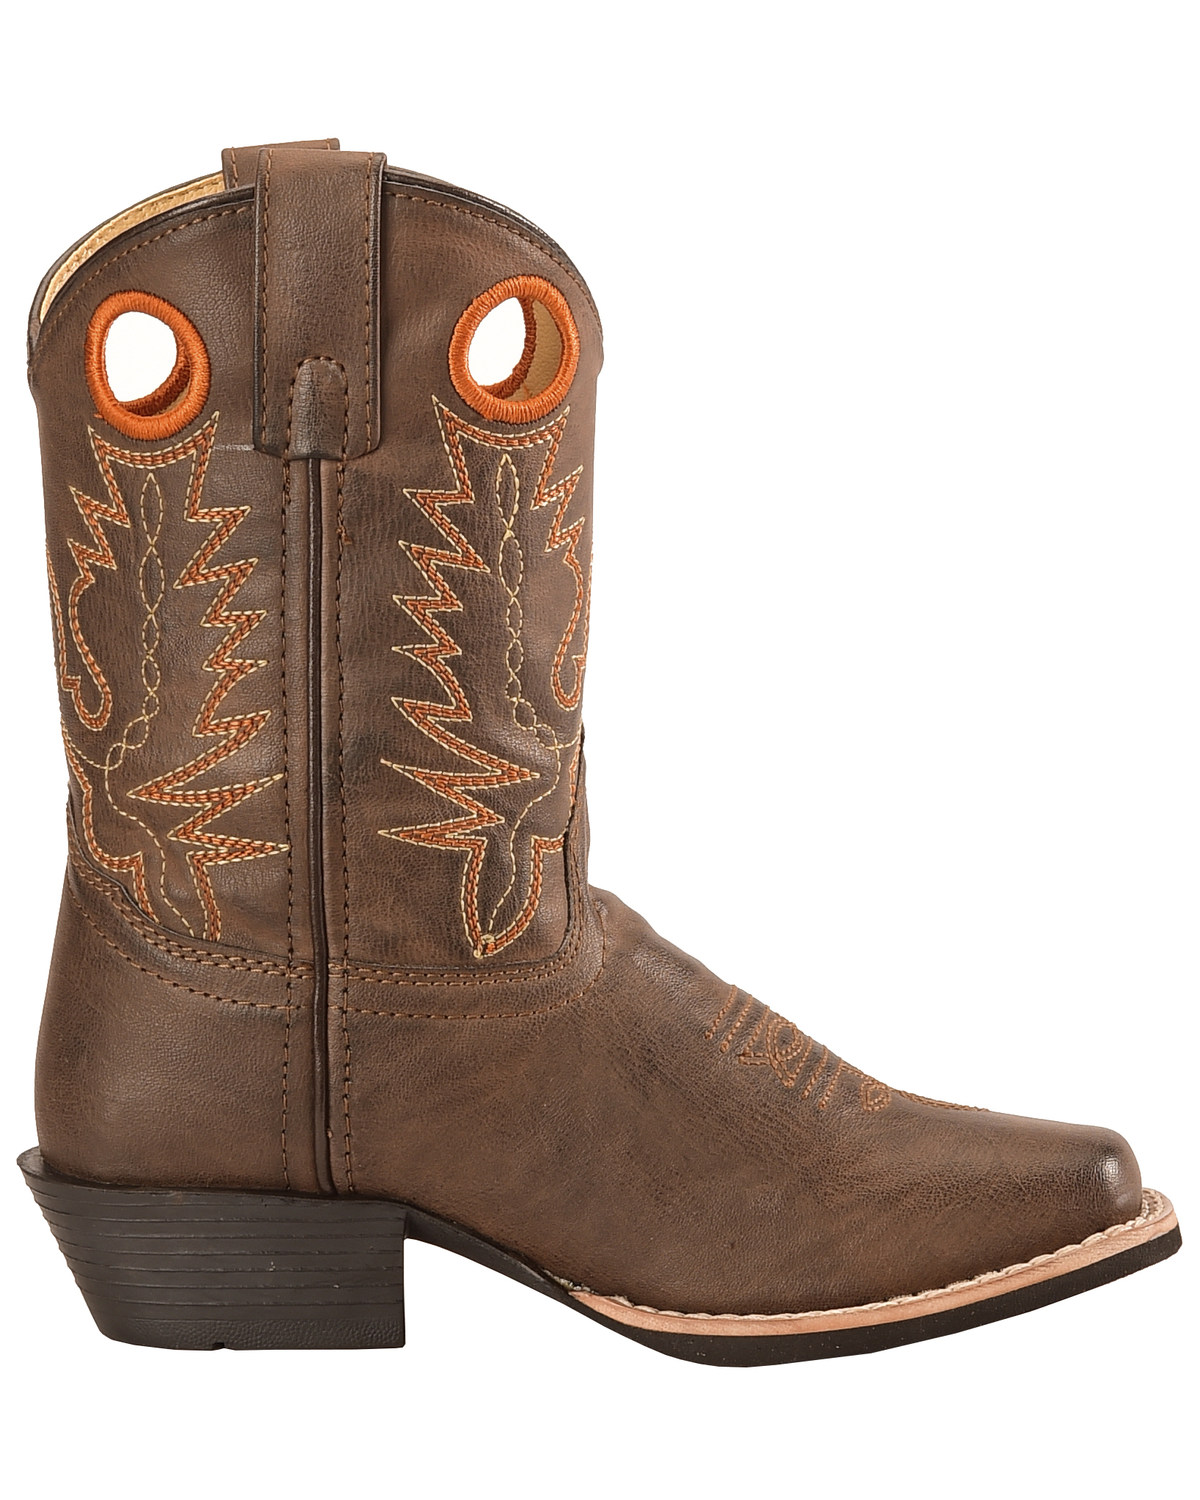 Swift Creek Youth Boys Brown Pull Hole Cowboy Boots